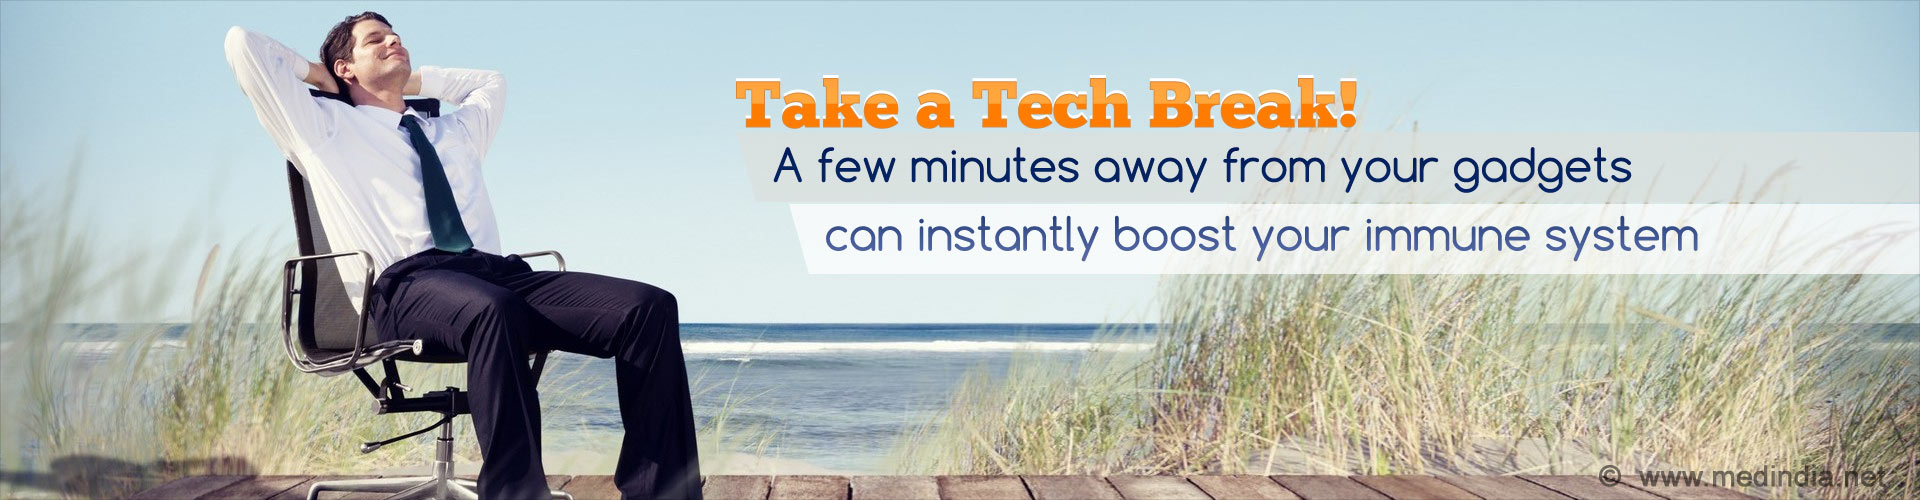 Take a Tech Break! A few minutes away from your gadgets can instantly boost your immune system